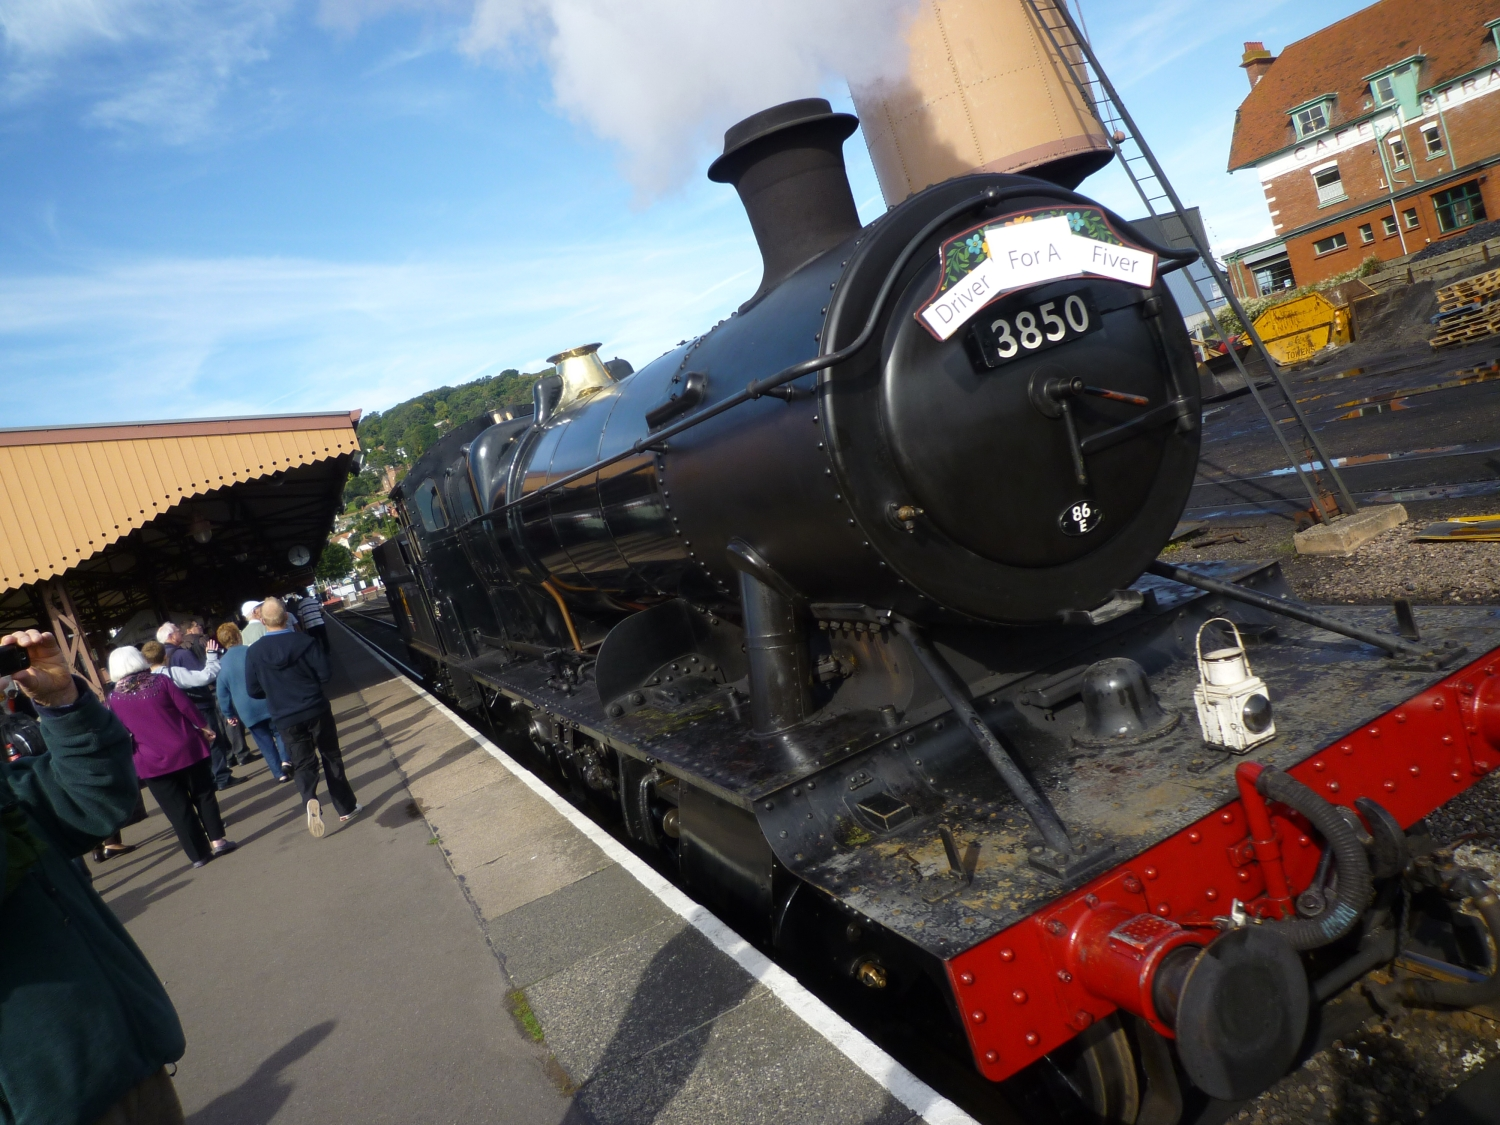 West Somerset Railway sale emails investigation launched